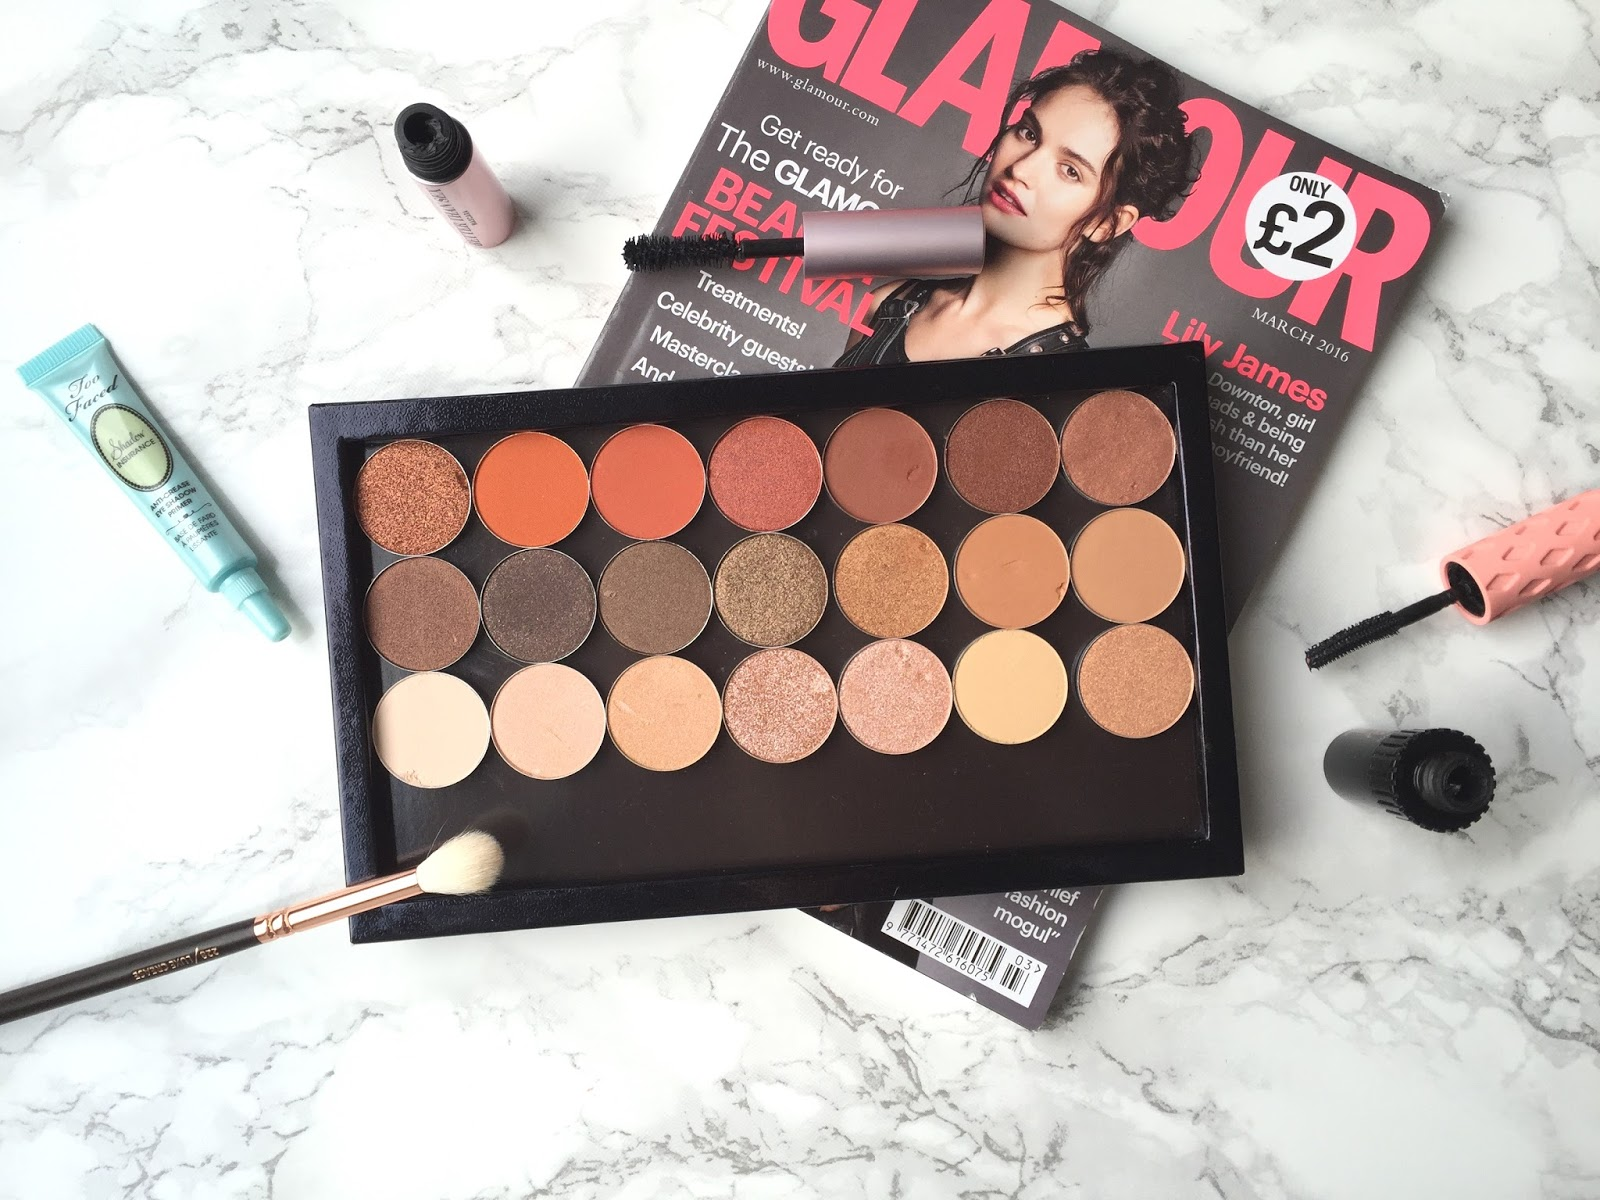 How to depot Morphe 35O, depot morphe 350, morphe 35o depotting, how to depot morphe eyeshadow, morphe eyeshadows depotted, depot jaclyn hill palette